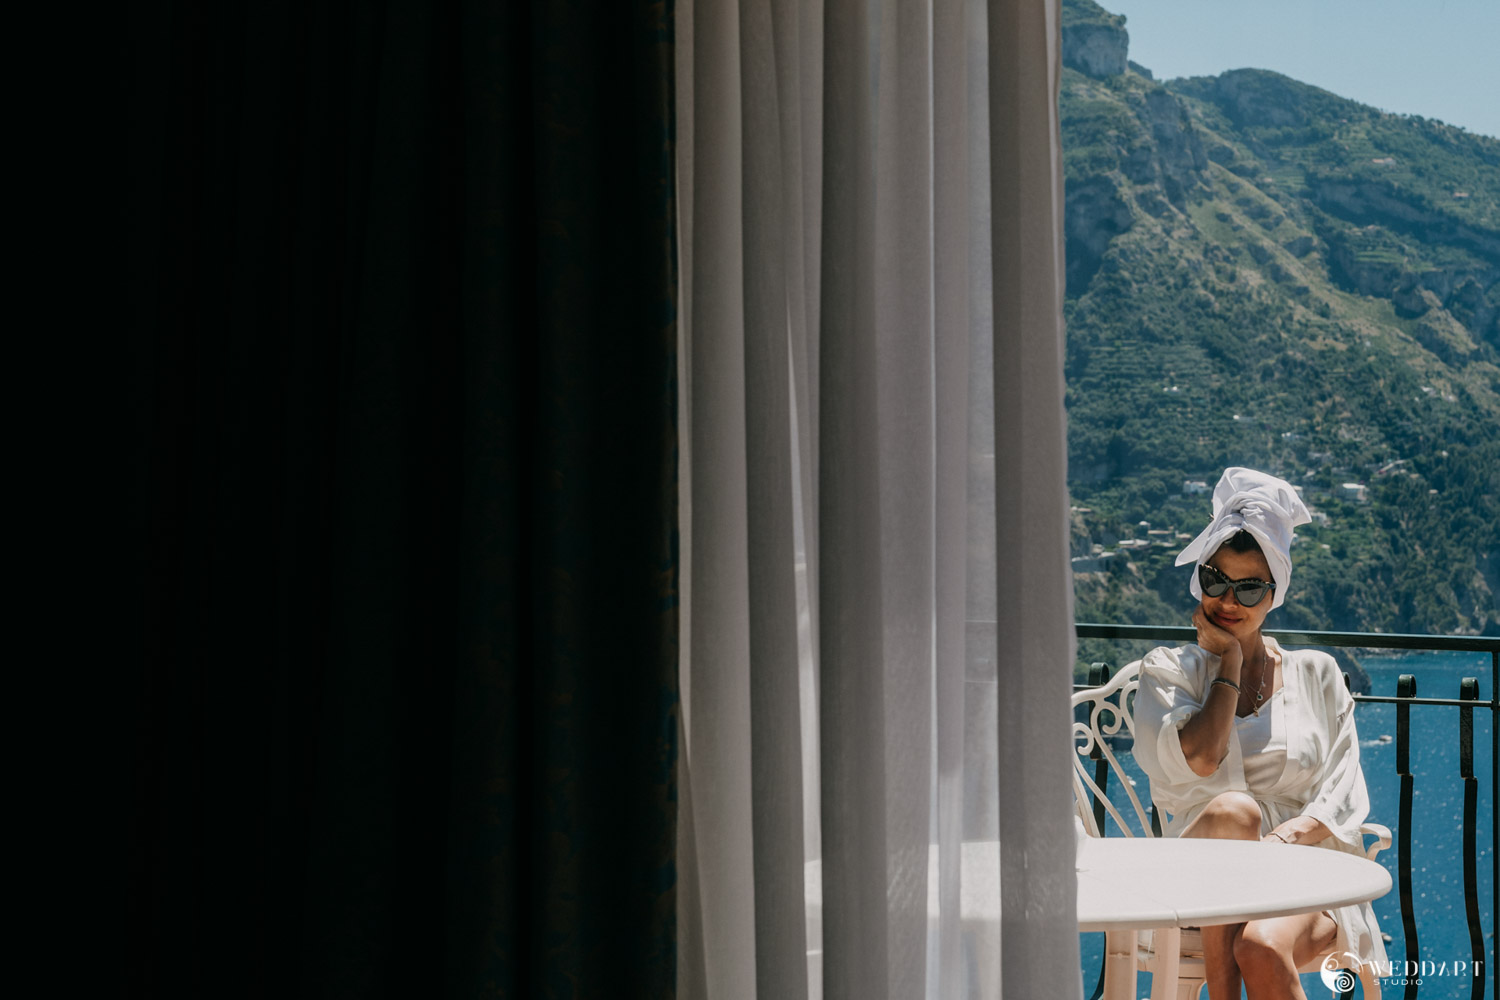 Luxury Wedding - Amalfi Coast - Destination Wedding Photographers and Videographers - Wedding Reportage - Weddart Studio - Giuseppe De Angelis - Simone Olivieri